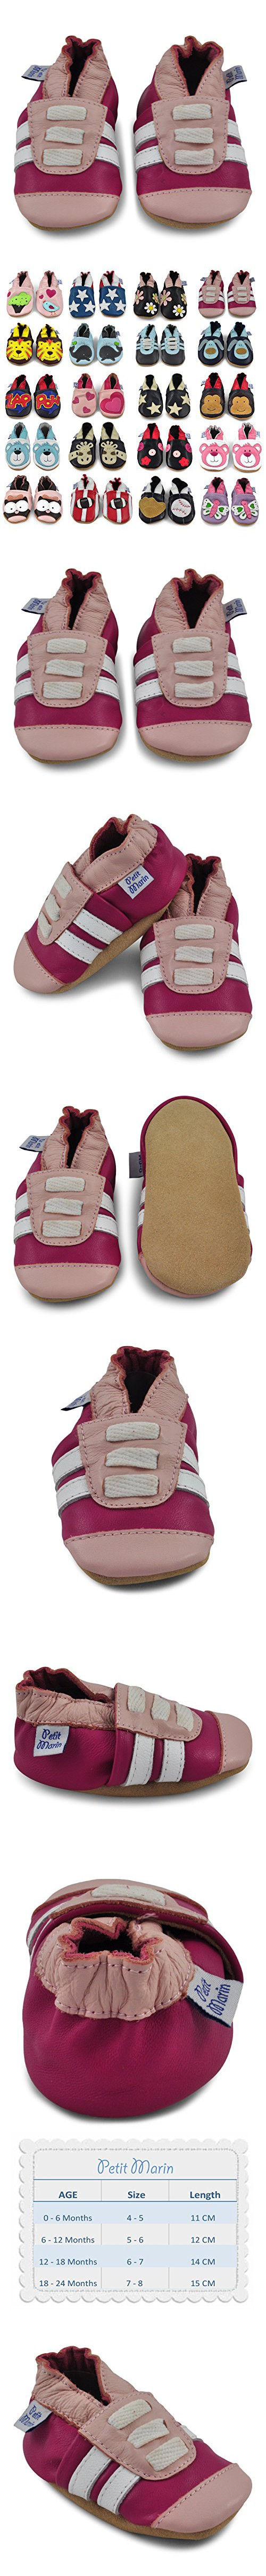 Petit Marin Beautiful Soft Leather Baby Shoes with Suede Soles